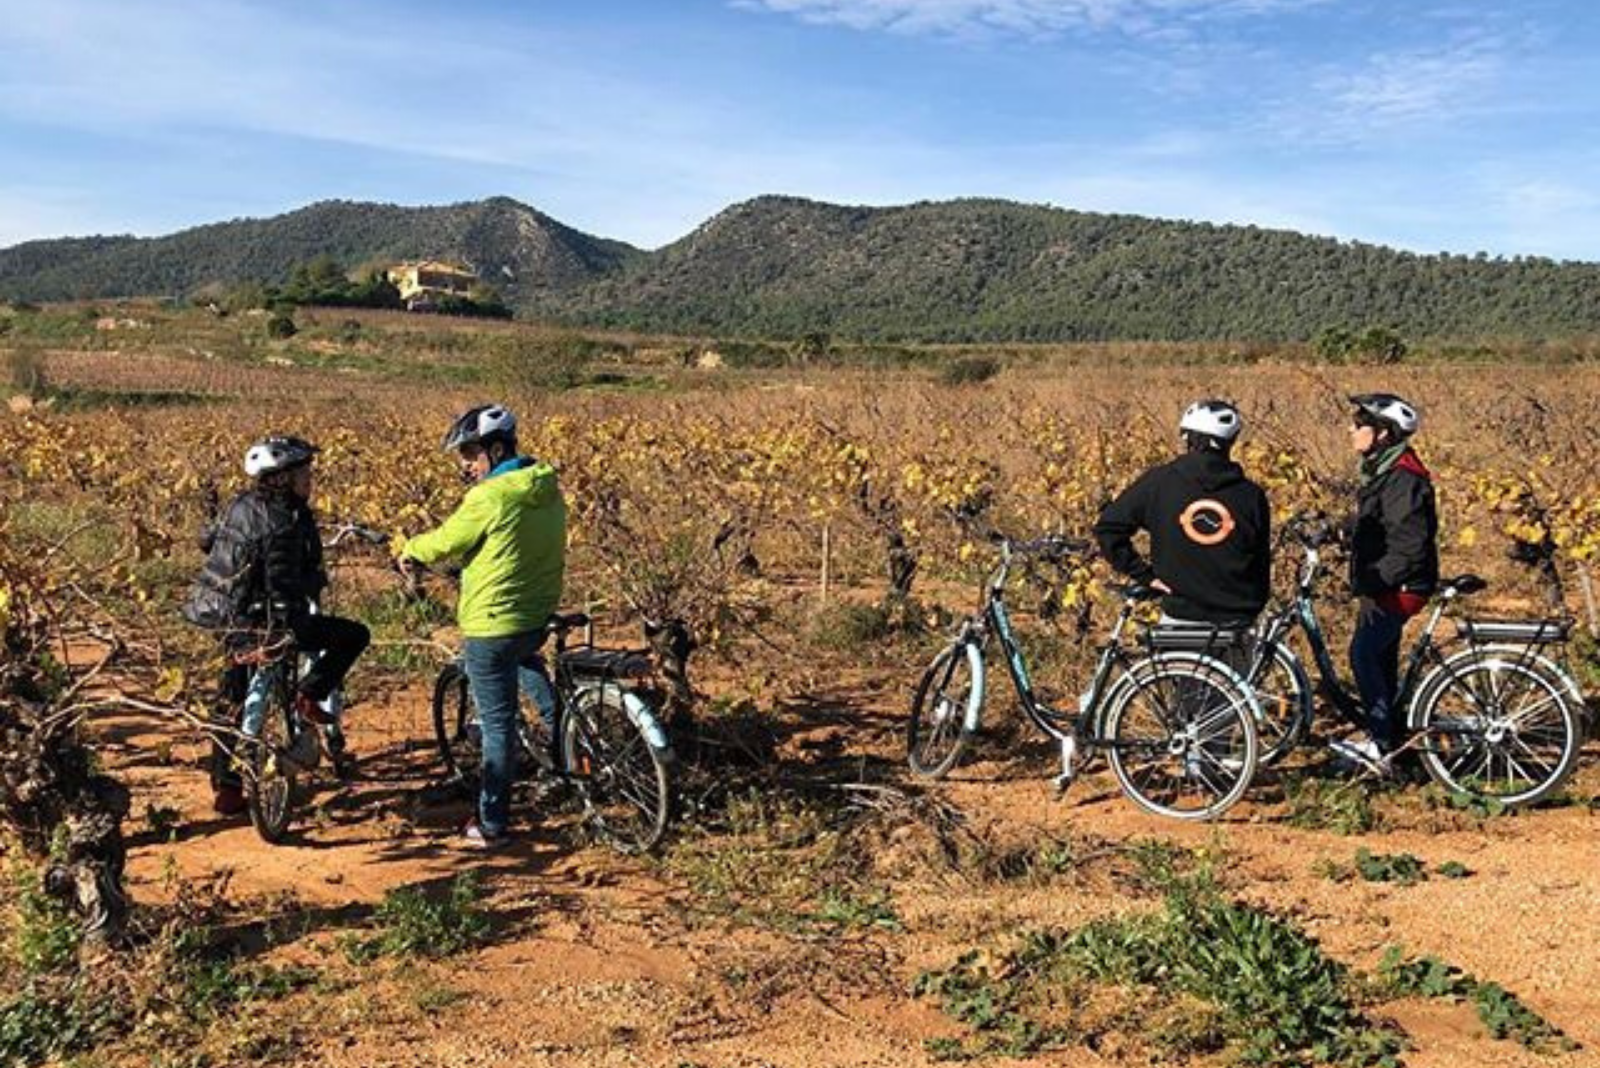 Visit a Winery on the Baix Penedès by Bicycle or Ebike